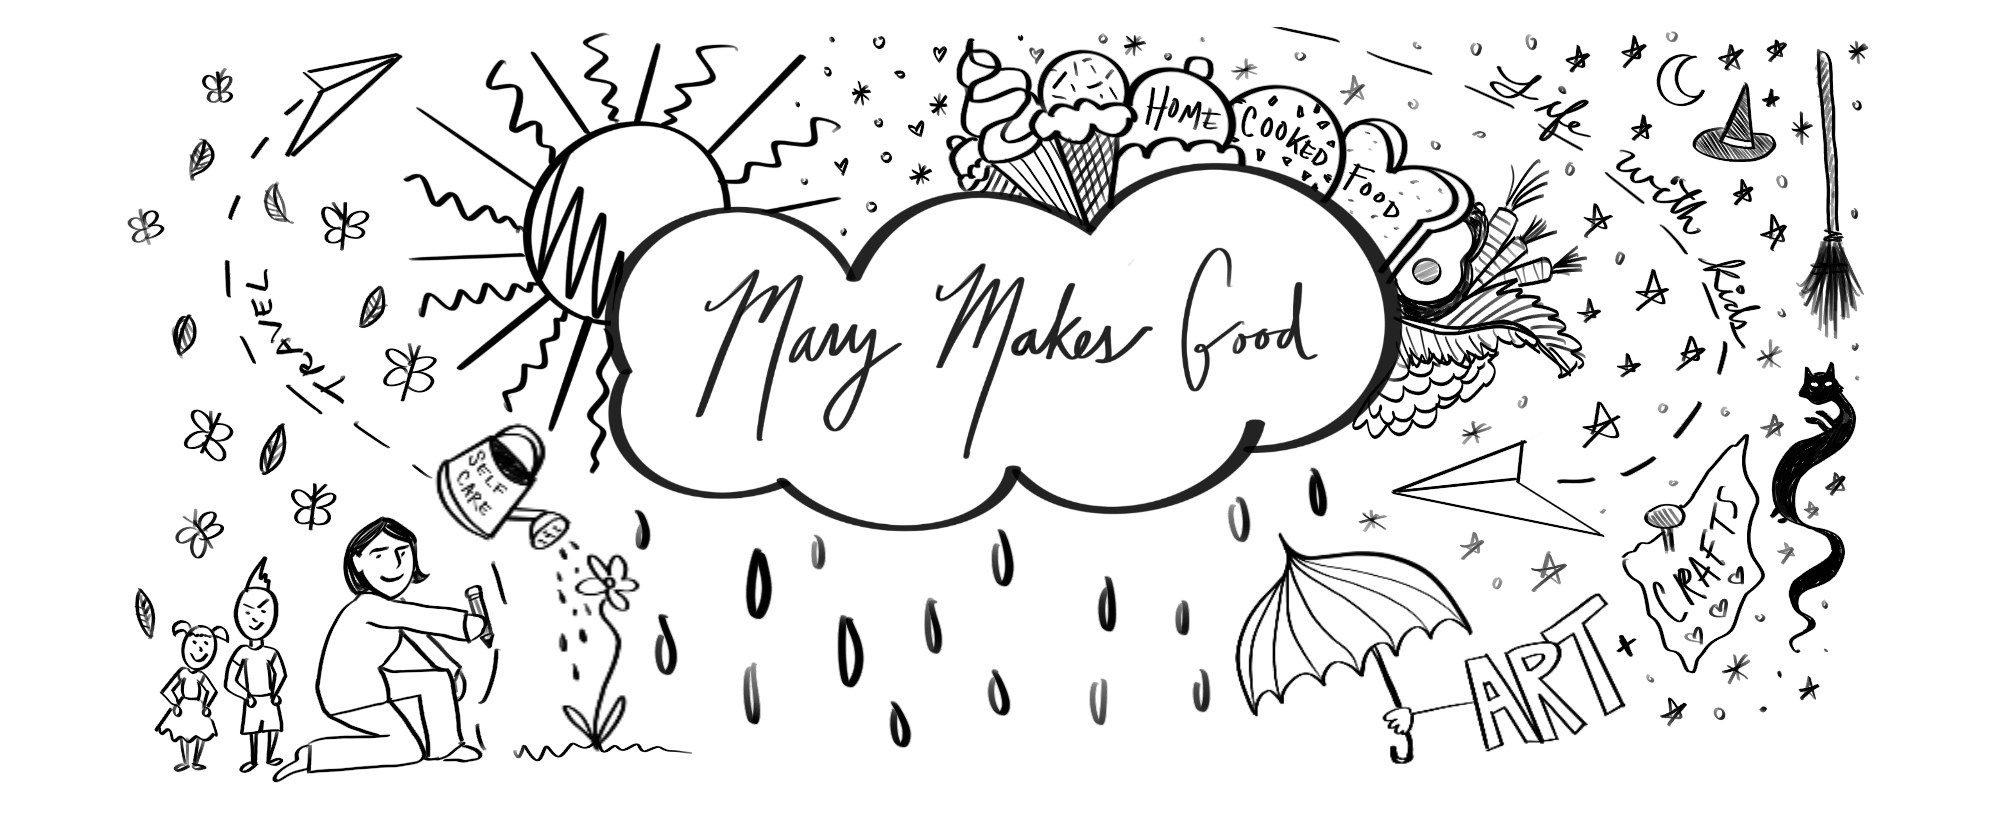 Hand illustrated banner for Mary makes good